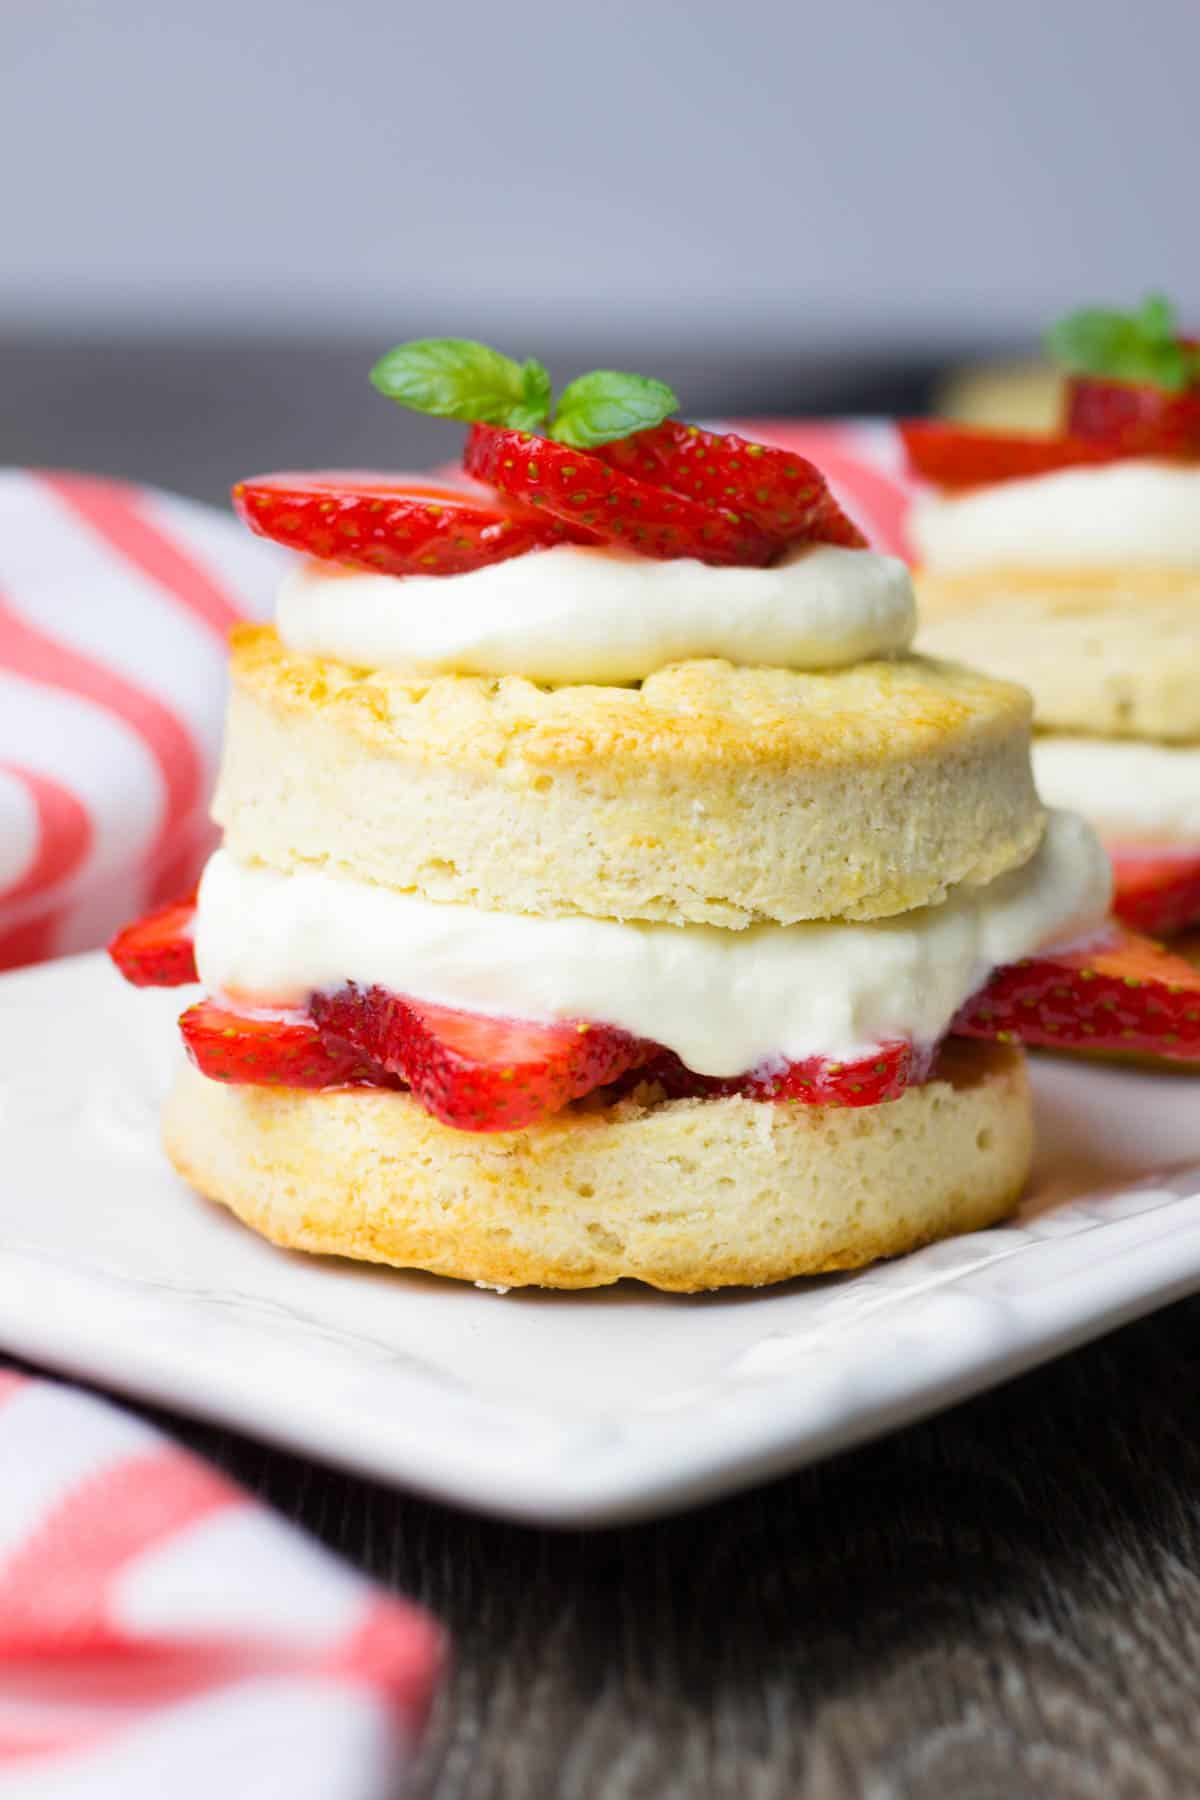 Shortcake, filled with whipped cream and fresh strawberries.